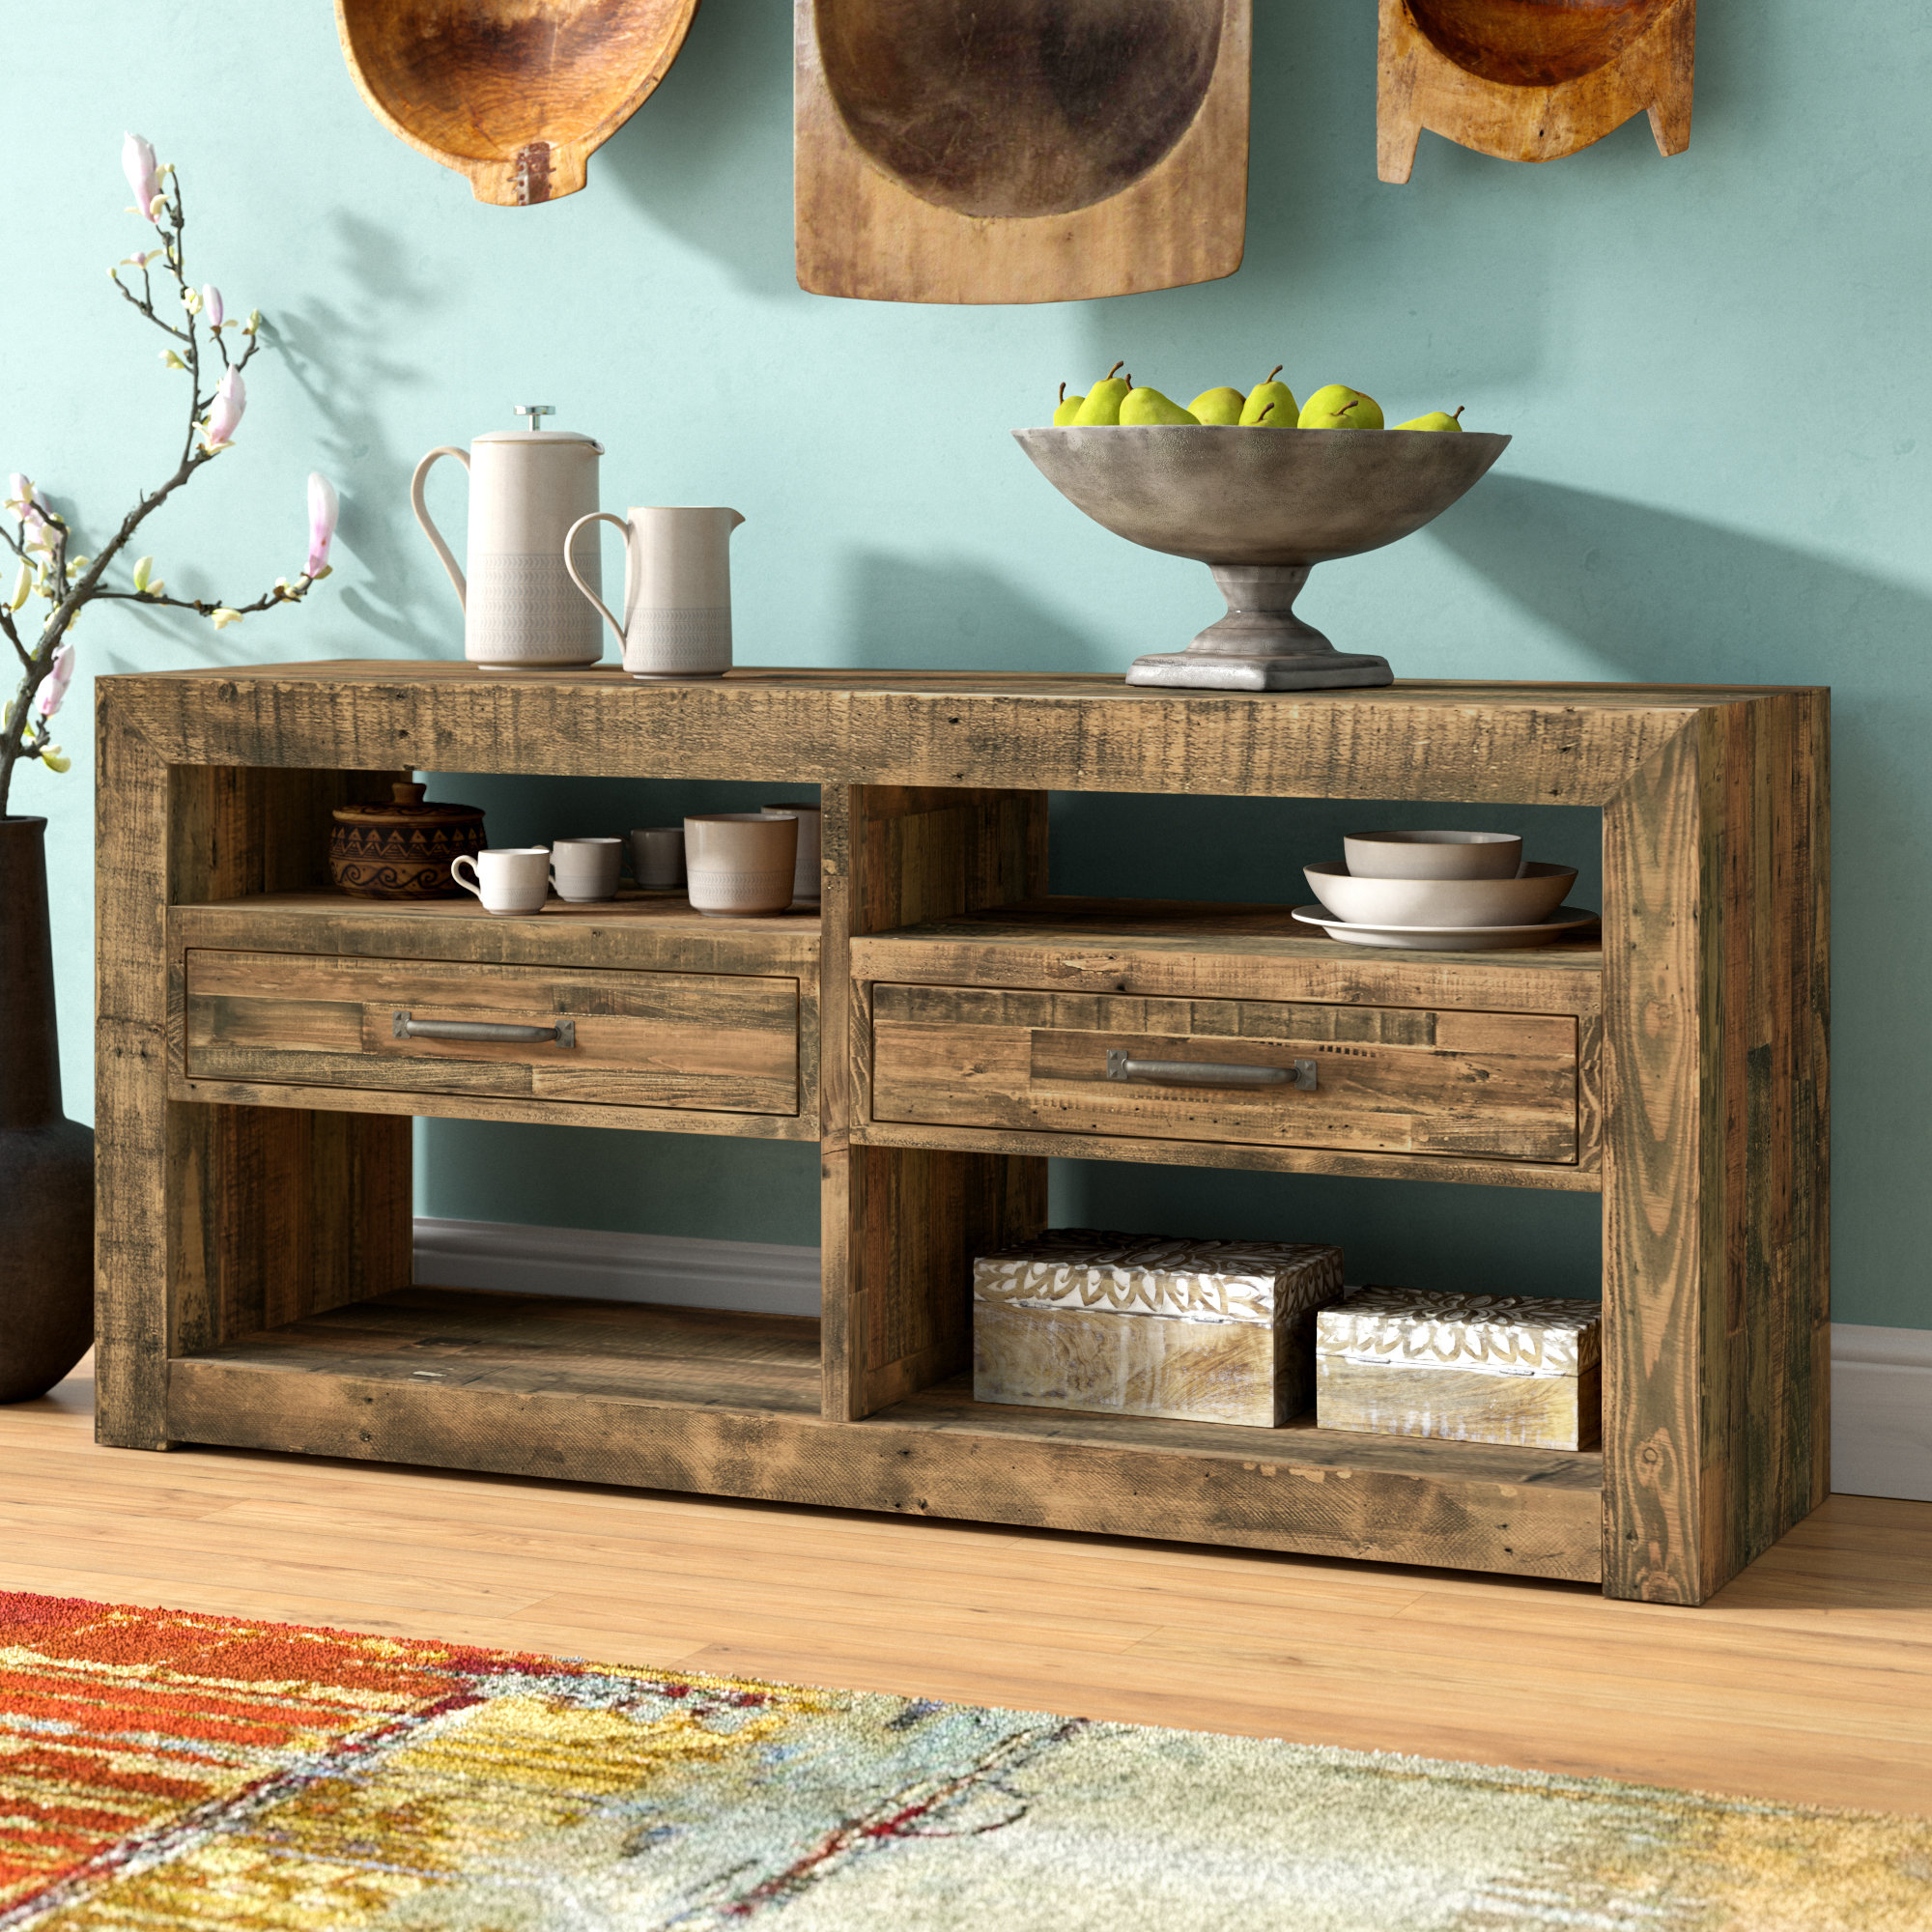 Dining Sideboards And Buffets | Wayfair Regarding Most Up To Date Pineville Dining Sideboards (View 8 of 20)